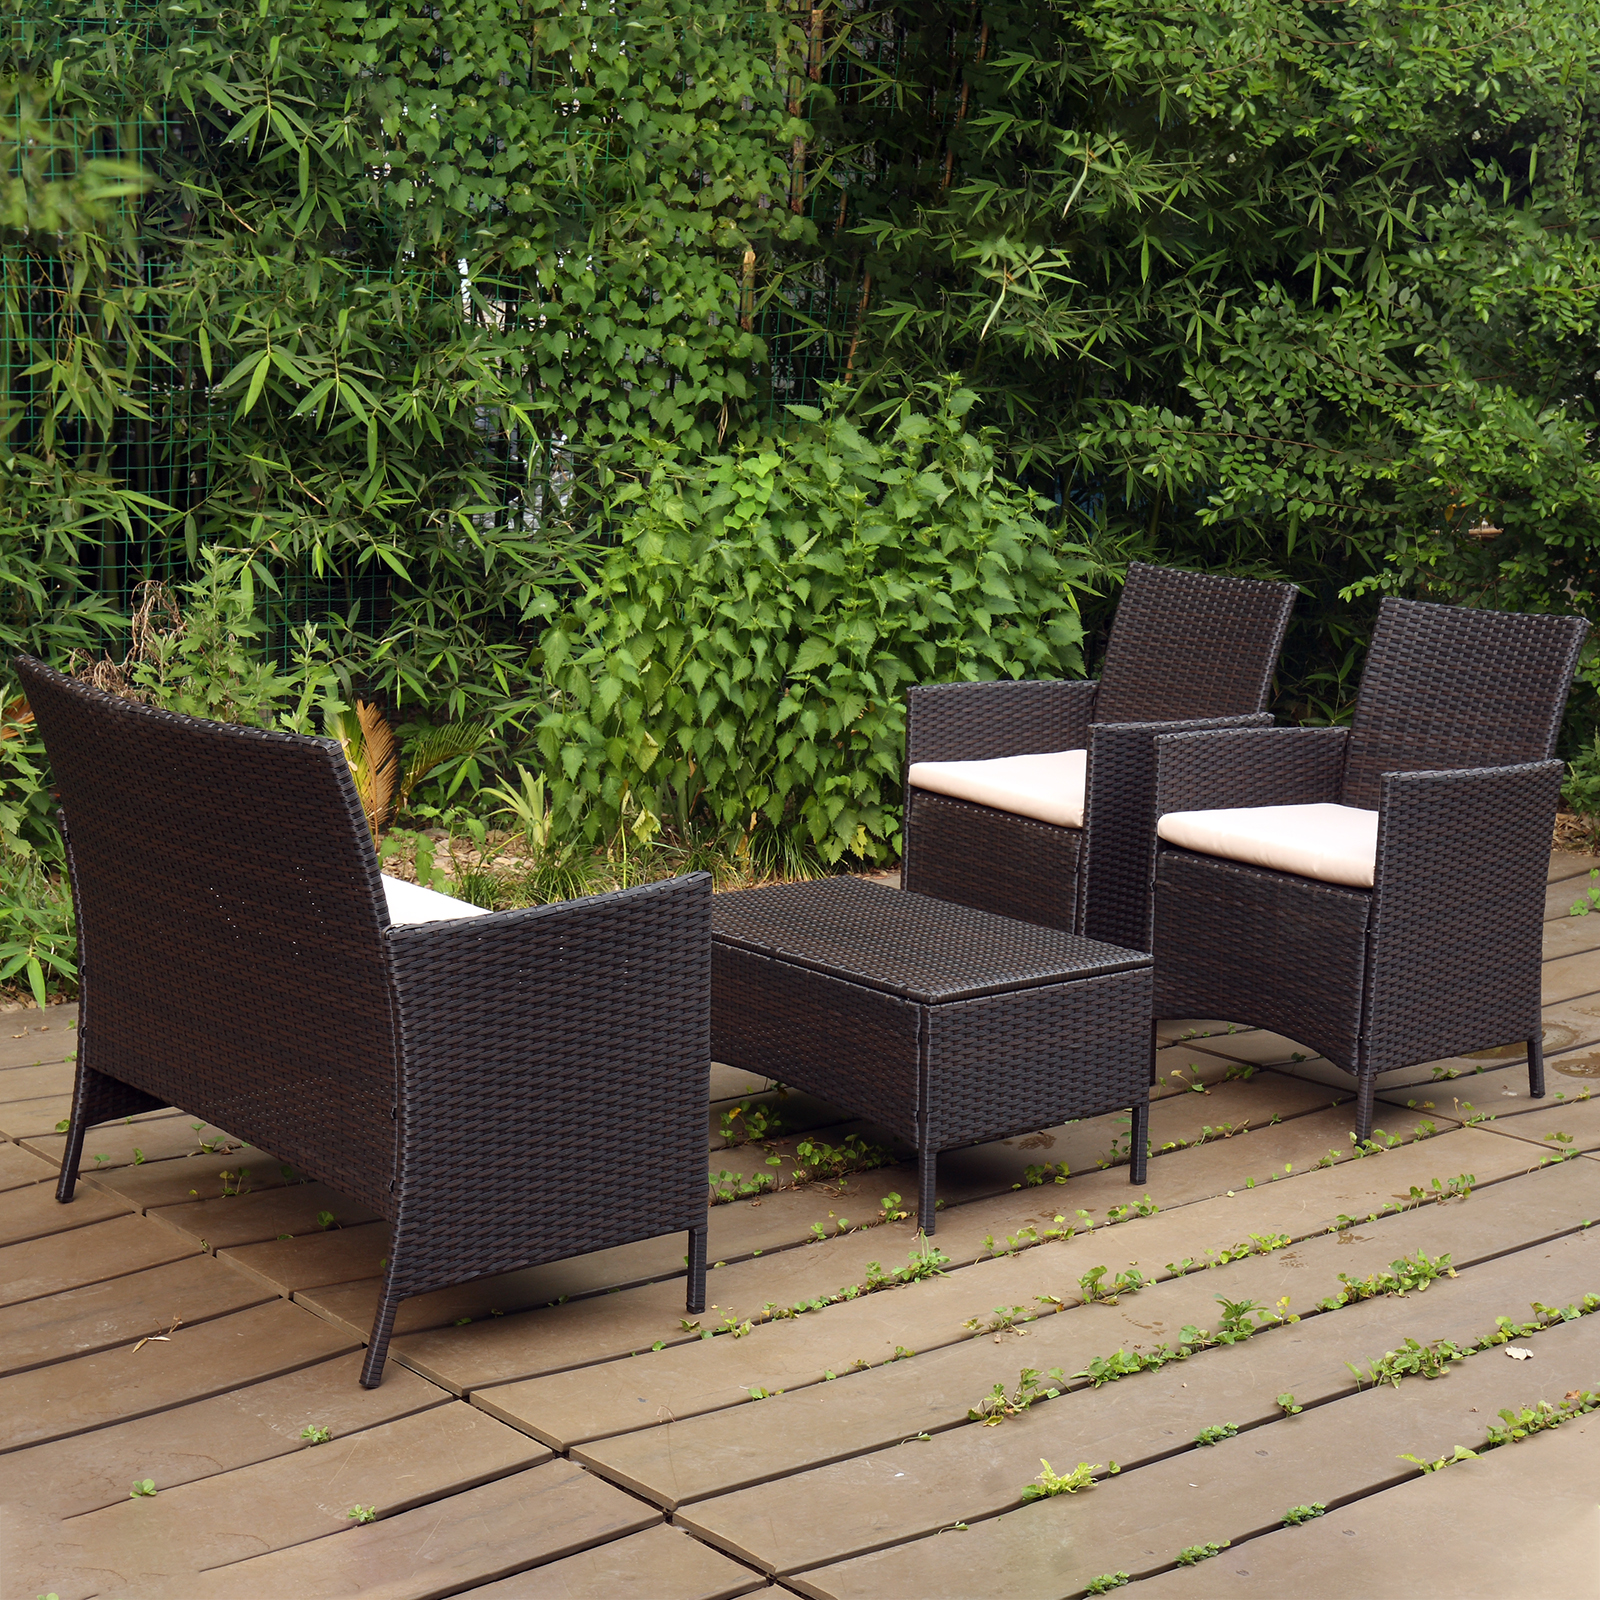 Details about 10PC RATTAN GARDEN FURNITURE SET SOFA ARMCHAIRS GLASS COFFEE  TABLE OUTDOOR PATIO